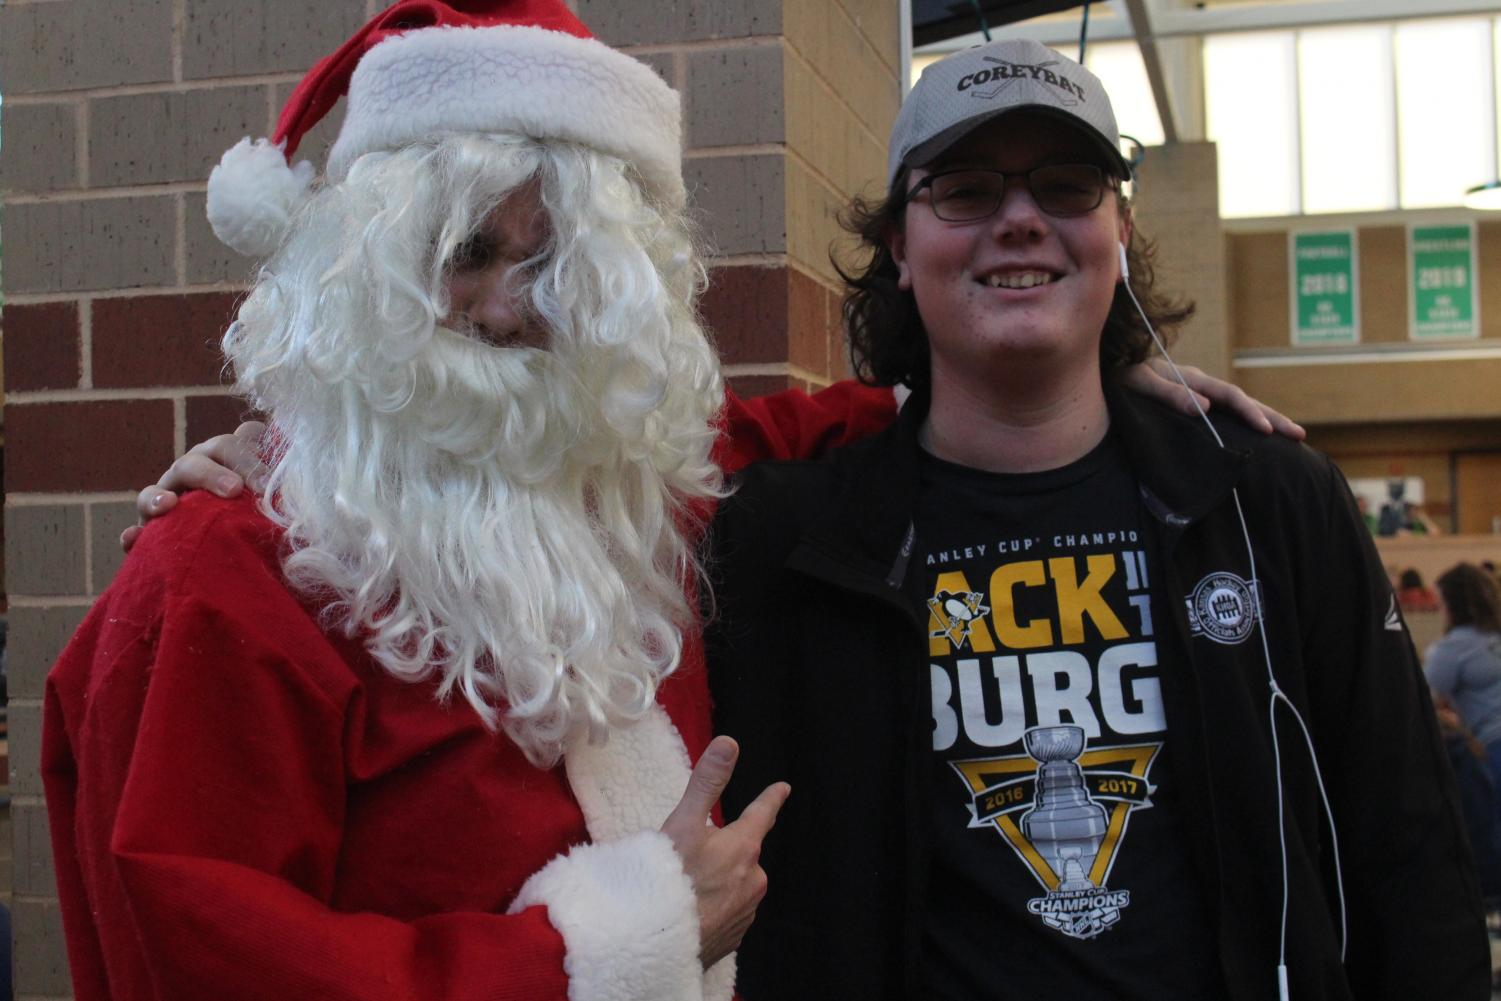 Junior+Corey+Whitfield+poses+for+a+photo+with+Santa